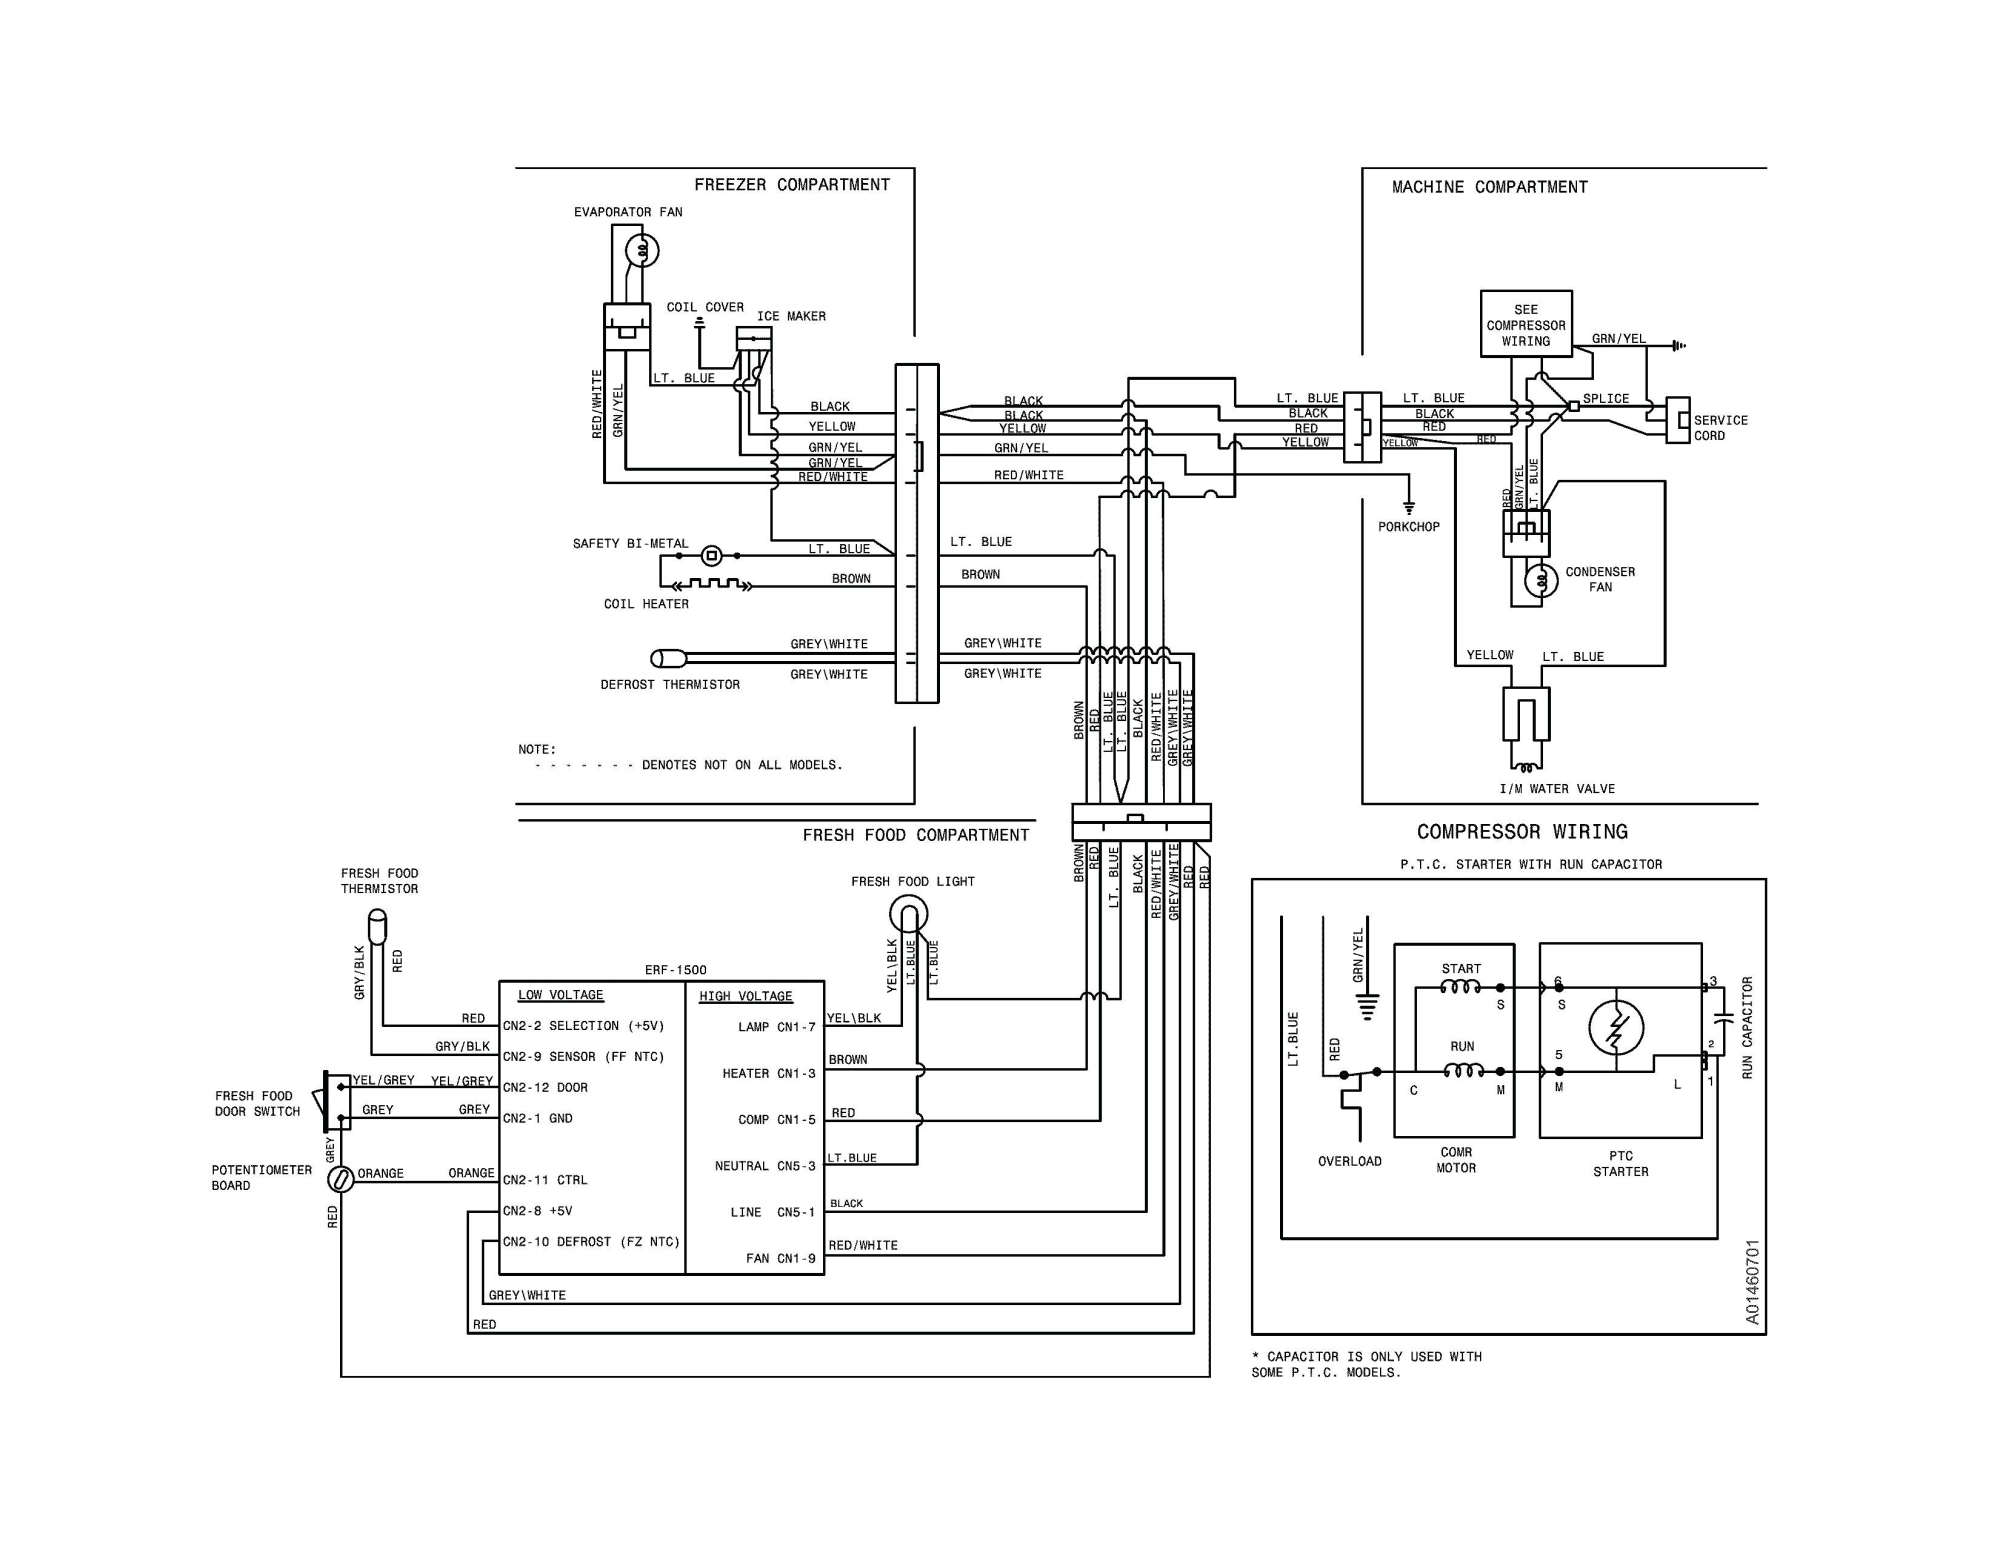 hight resolution of frigidaire refrigerator wiring diagram frigidaire refrigerator wiring diagram download wiring diagram for trailer lights and